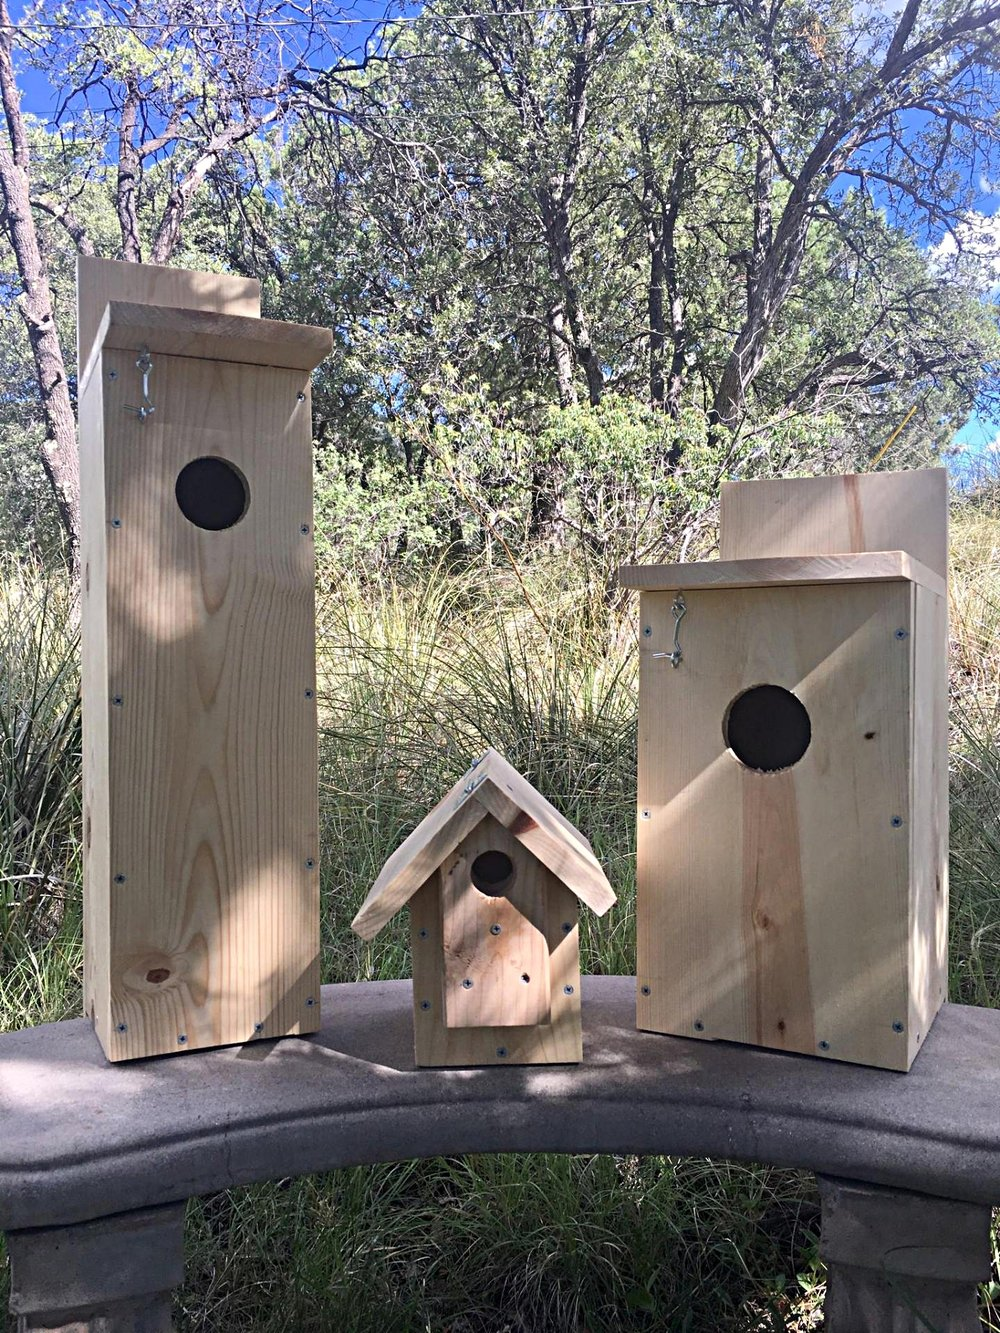 Left: Flicker Nest Box; Center: Song Bird Nest Box; Right: Owl Nest Box